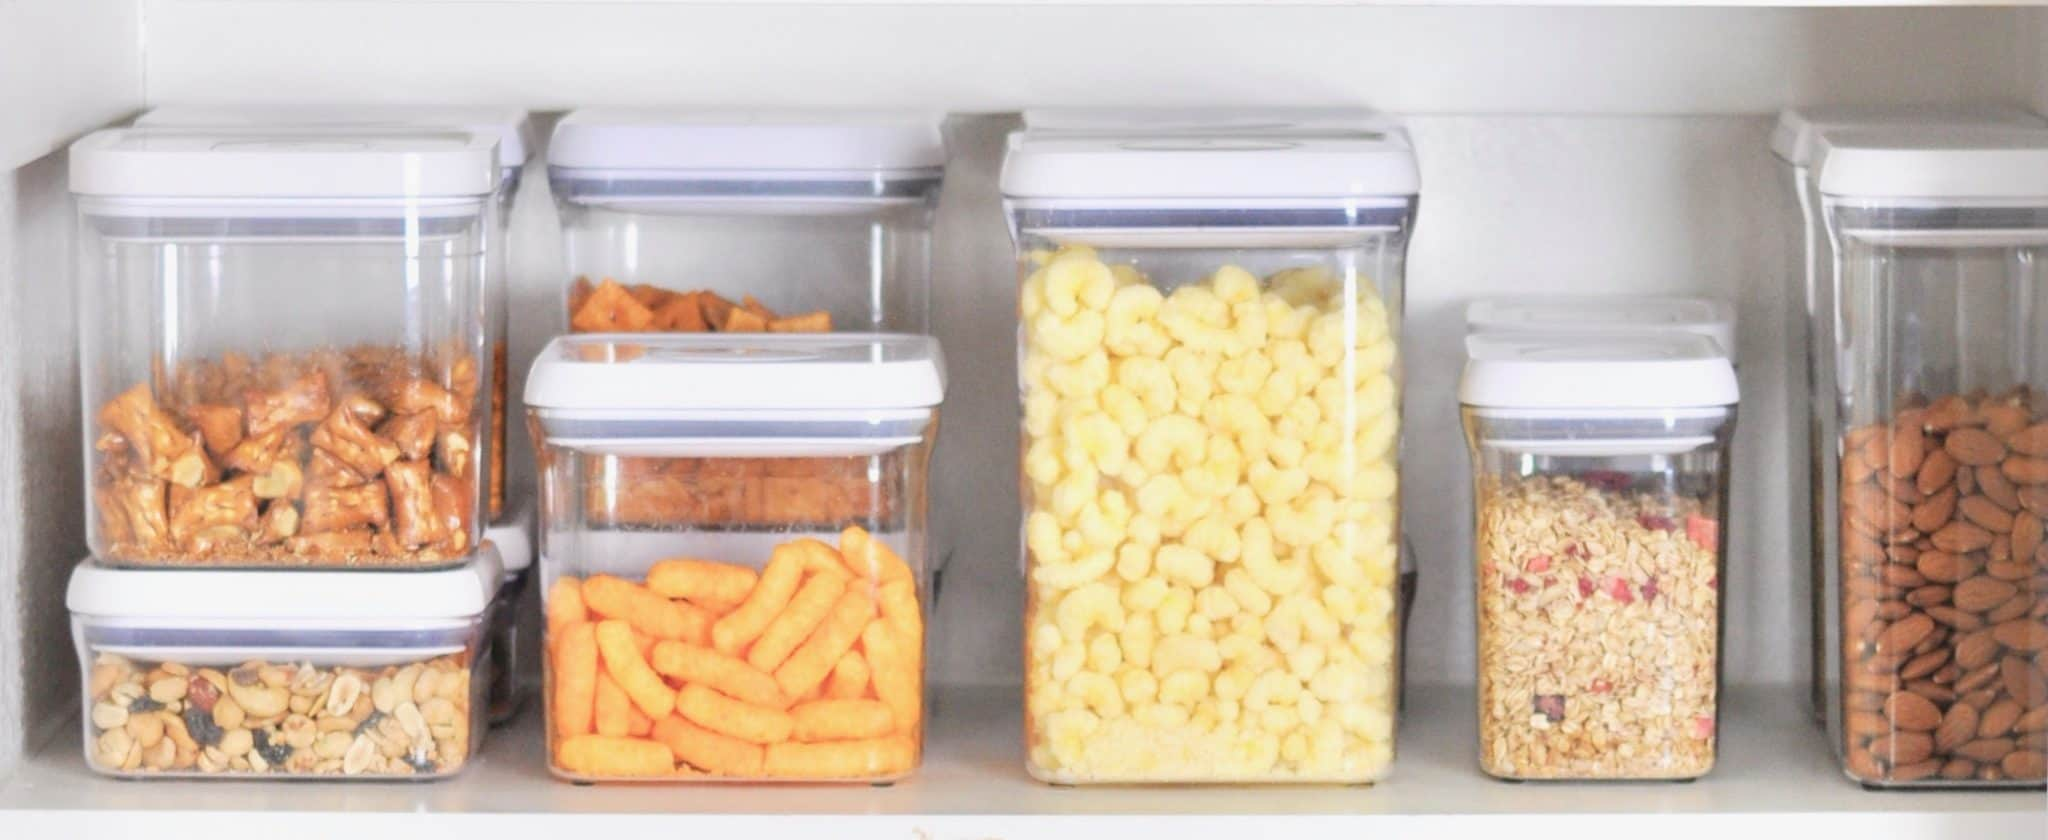 OXO containers pantry organized